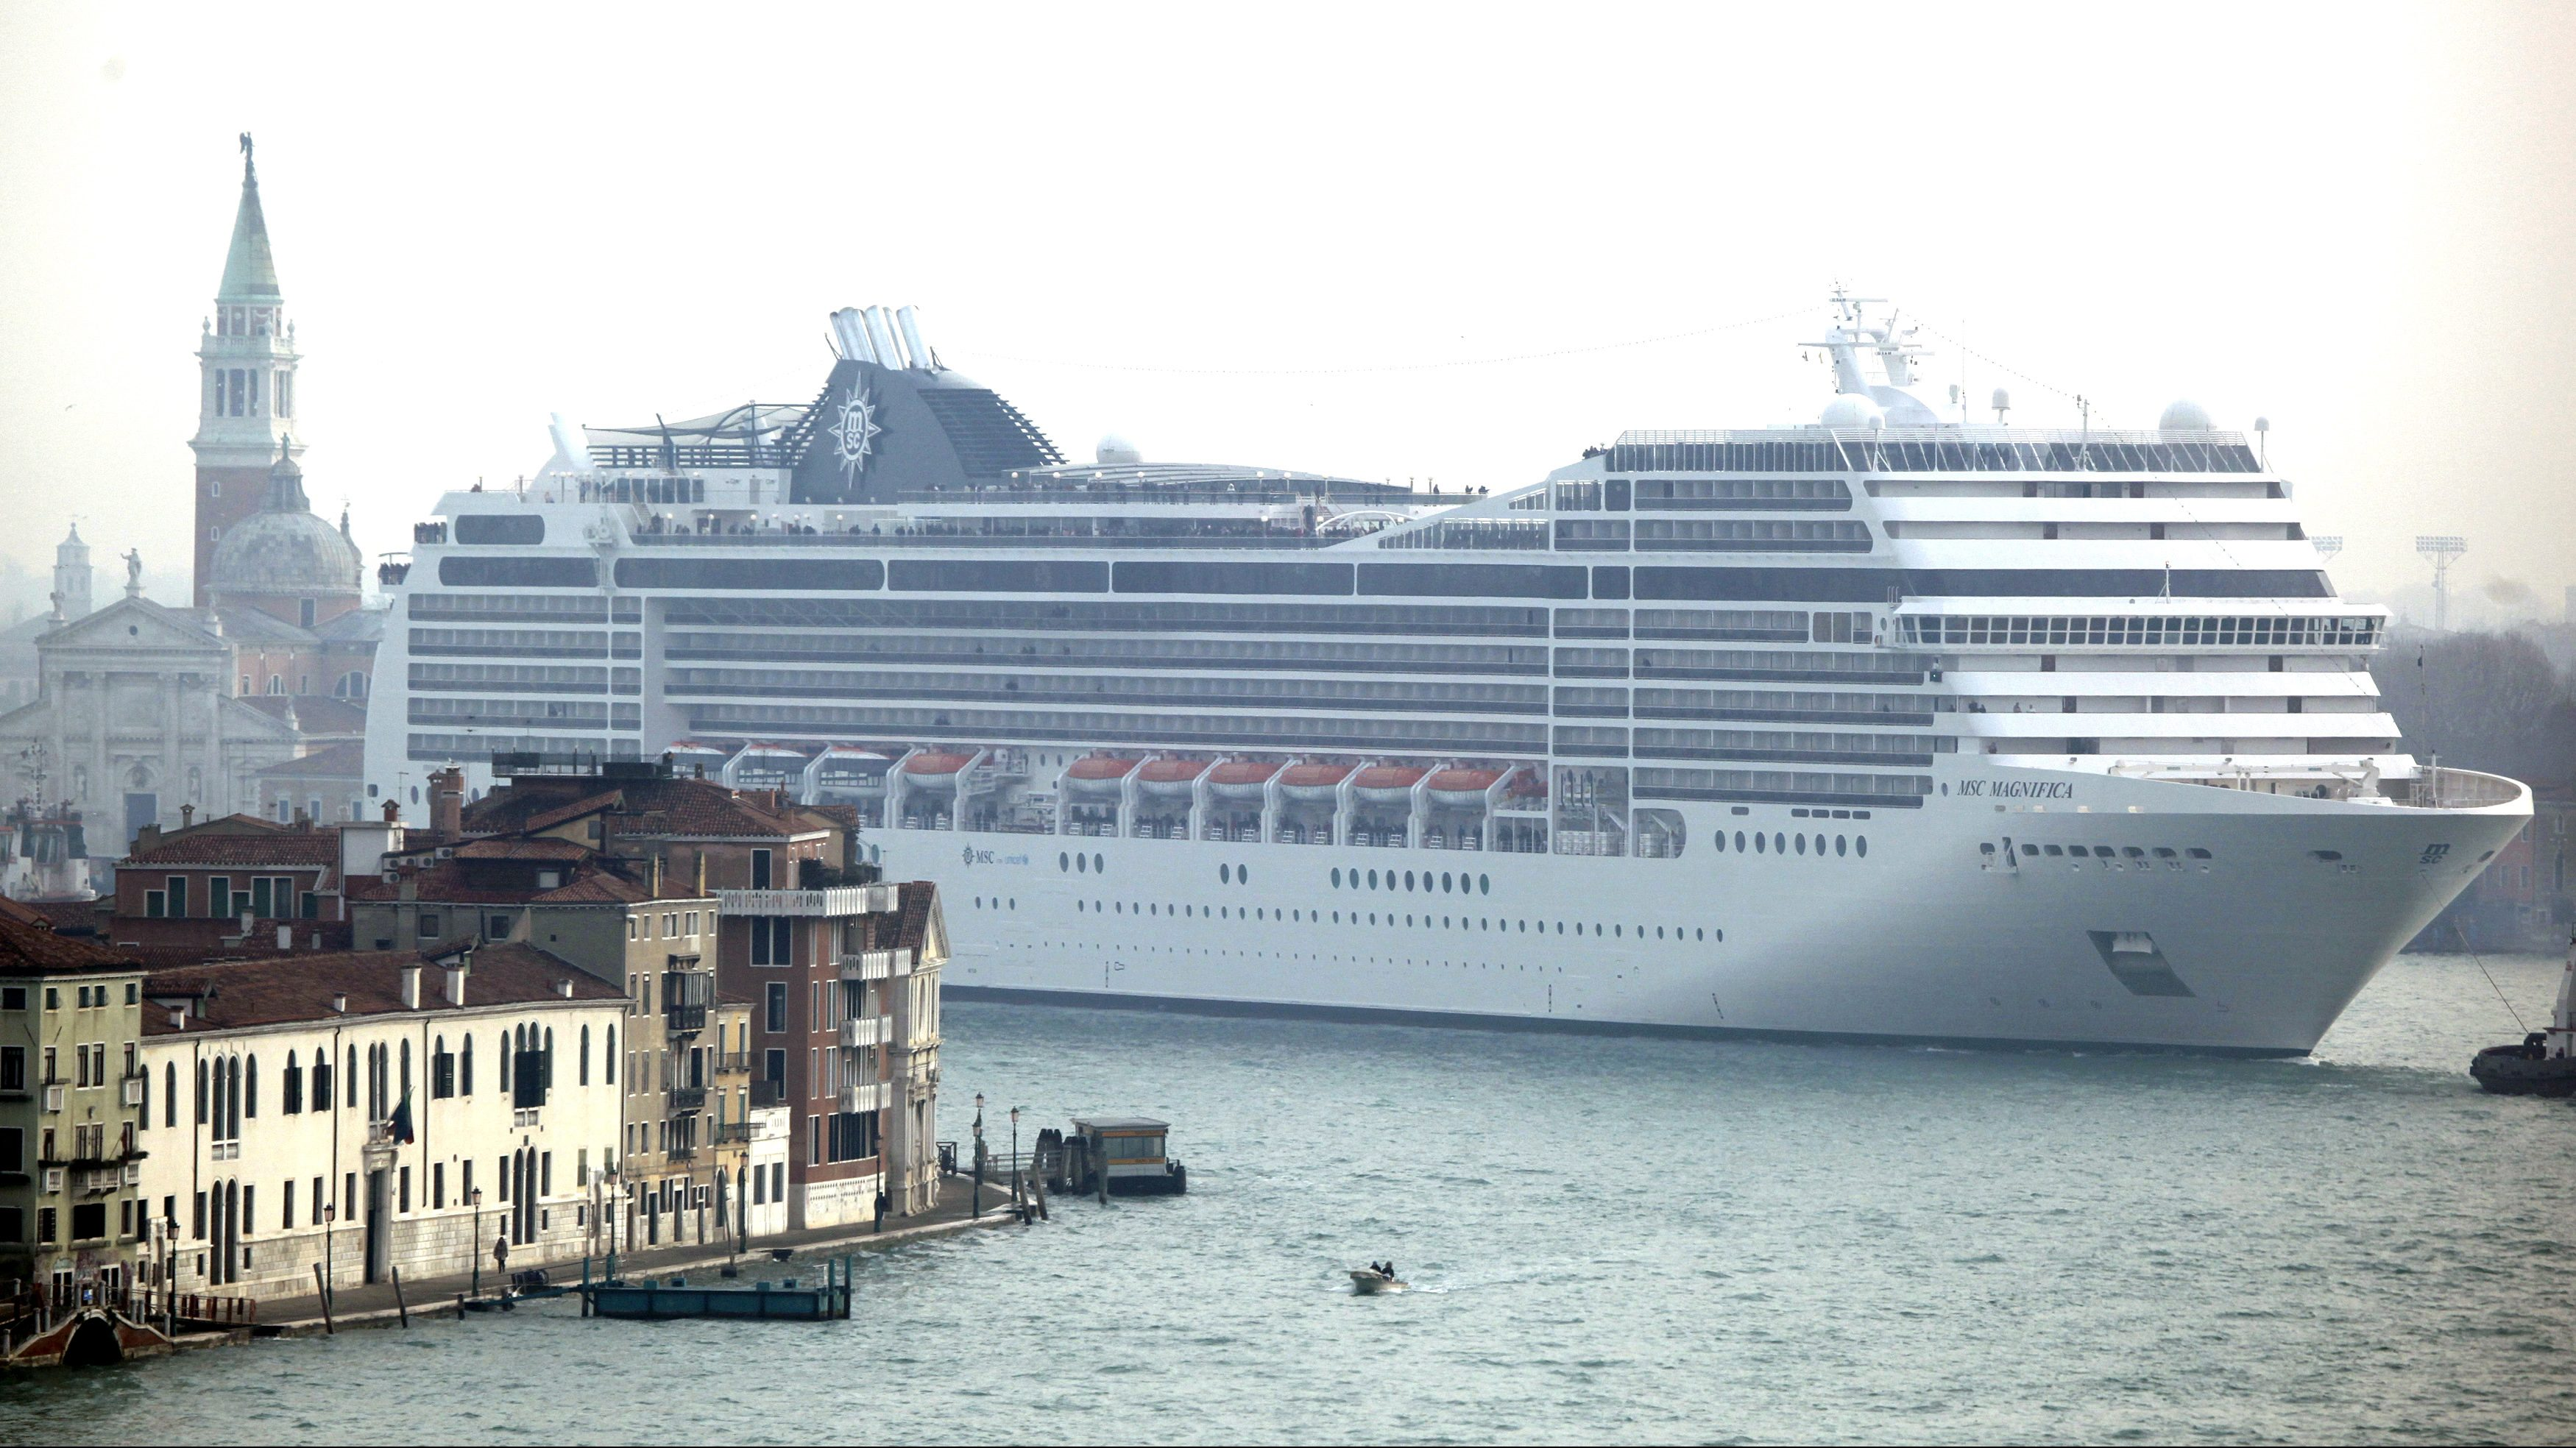 A cruise ship sails in the Venice lagoon near St. Mark's Square January 23, 2012. In the wake of the Costa Concordia disaster, Italian environmentalists and some politicians are demanding that big cruise ships be banned from passing too close to islands or shorelines, or entering delicate areas such as the Venice lagoon.